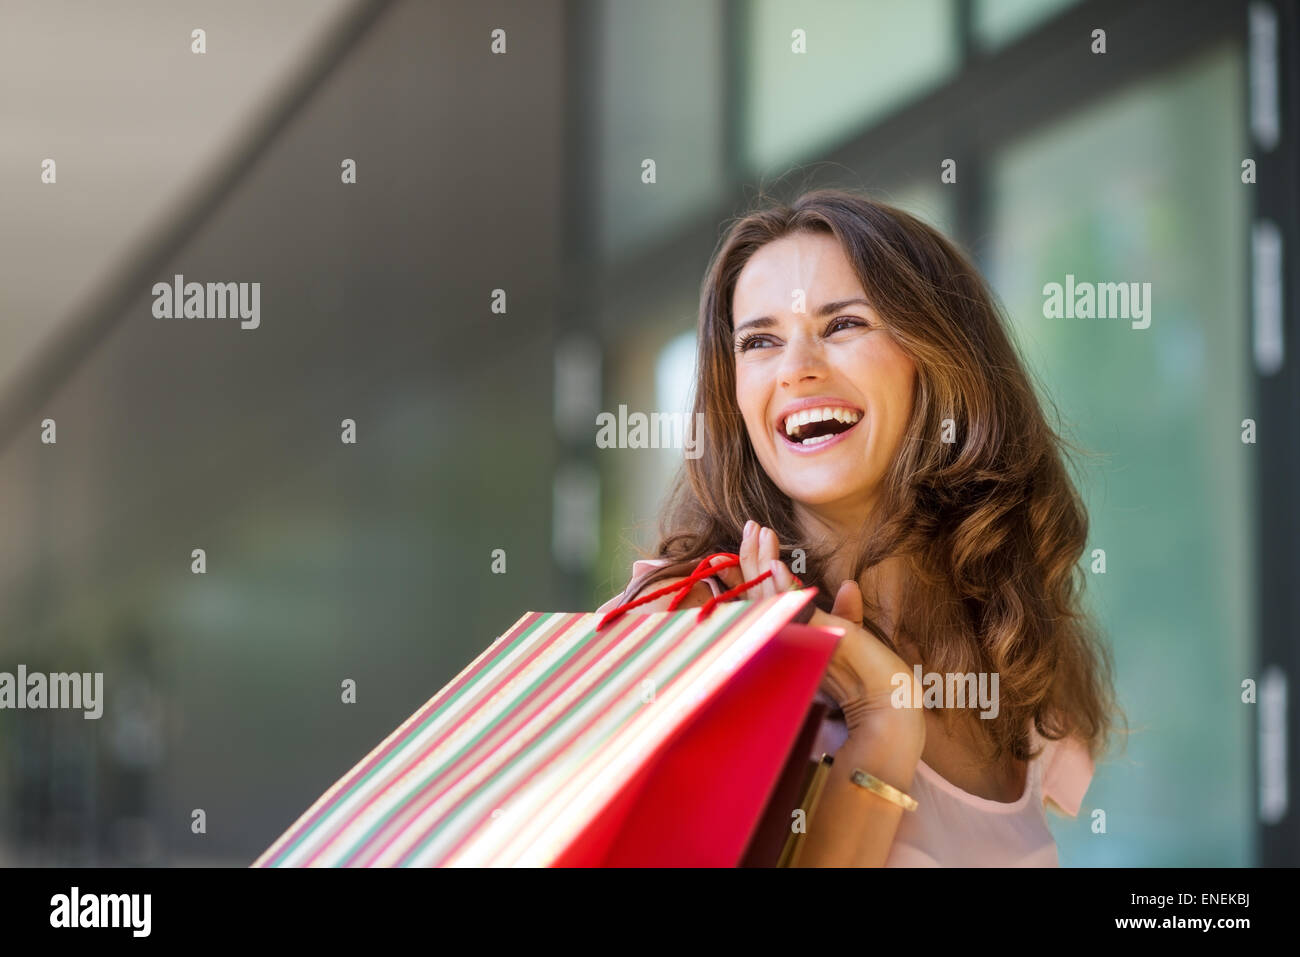 A brown-haired woman holding a striped, multi-coloured shopping bag over her right shoulder laughs and smiles while - Stock Image